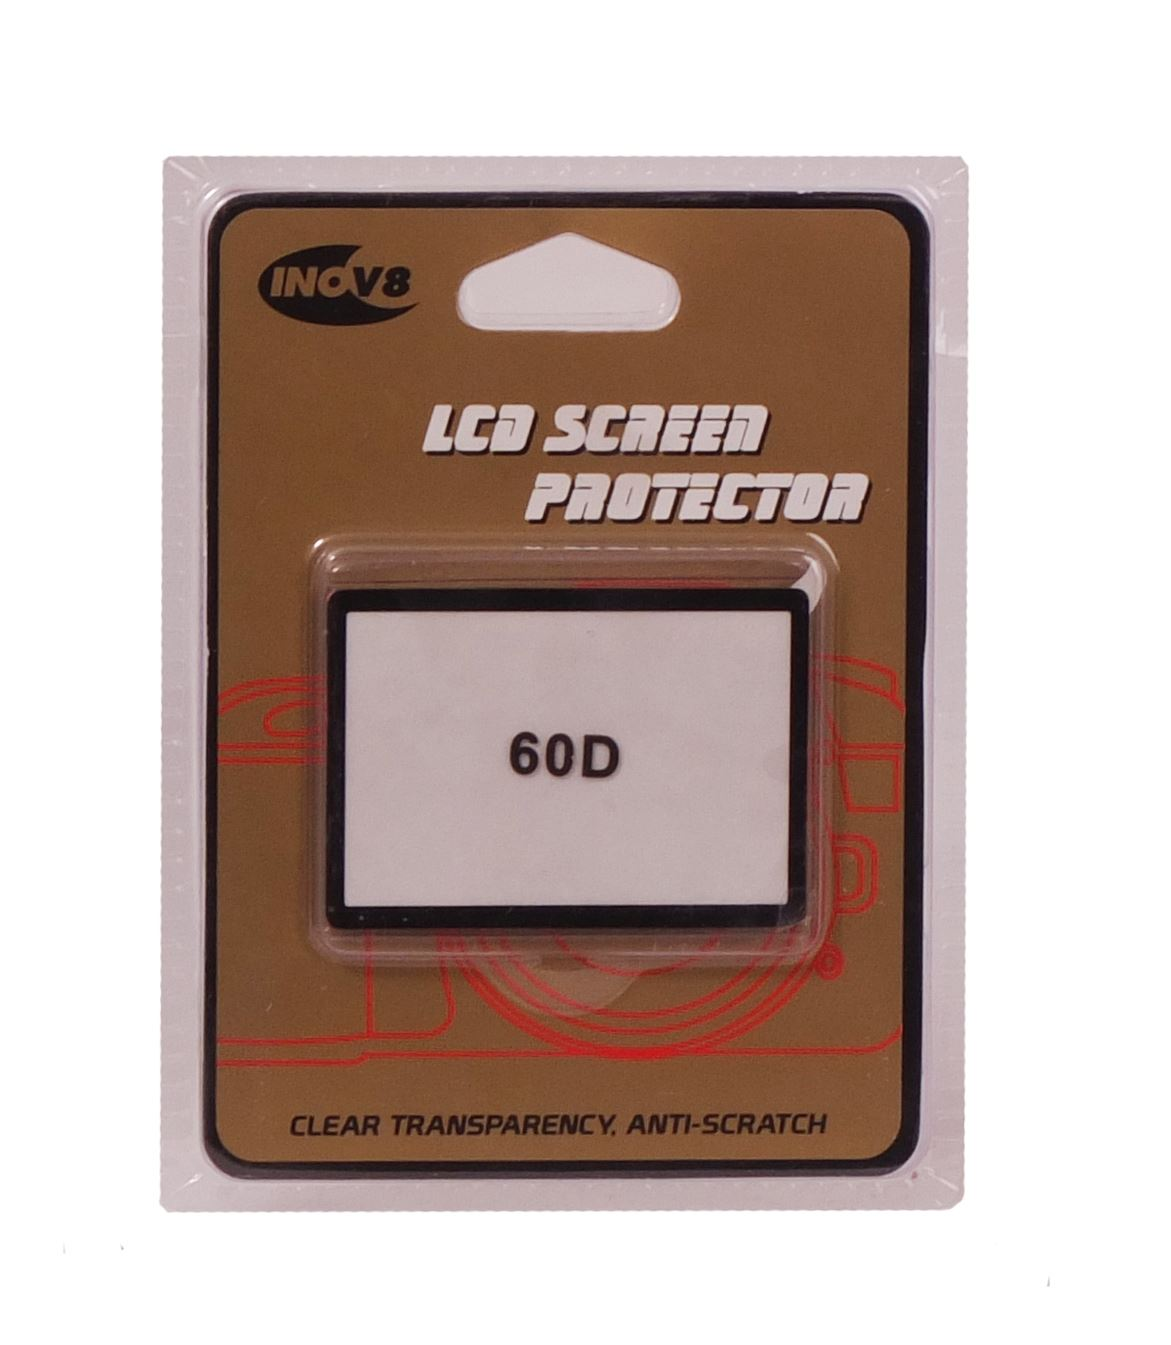 Pro Glass Screen Protector - 60D